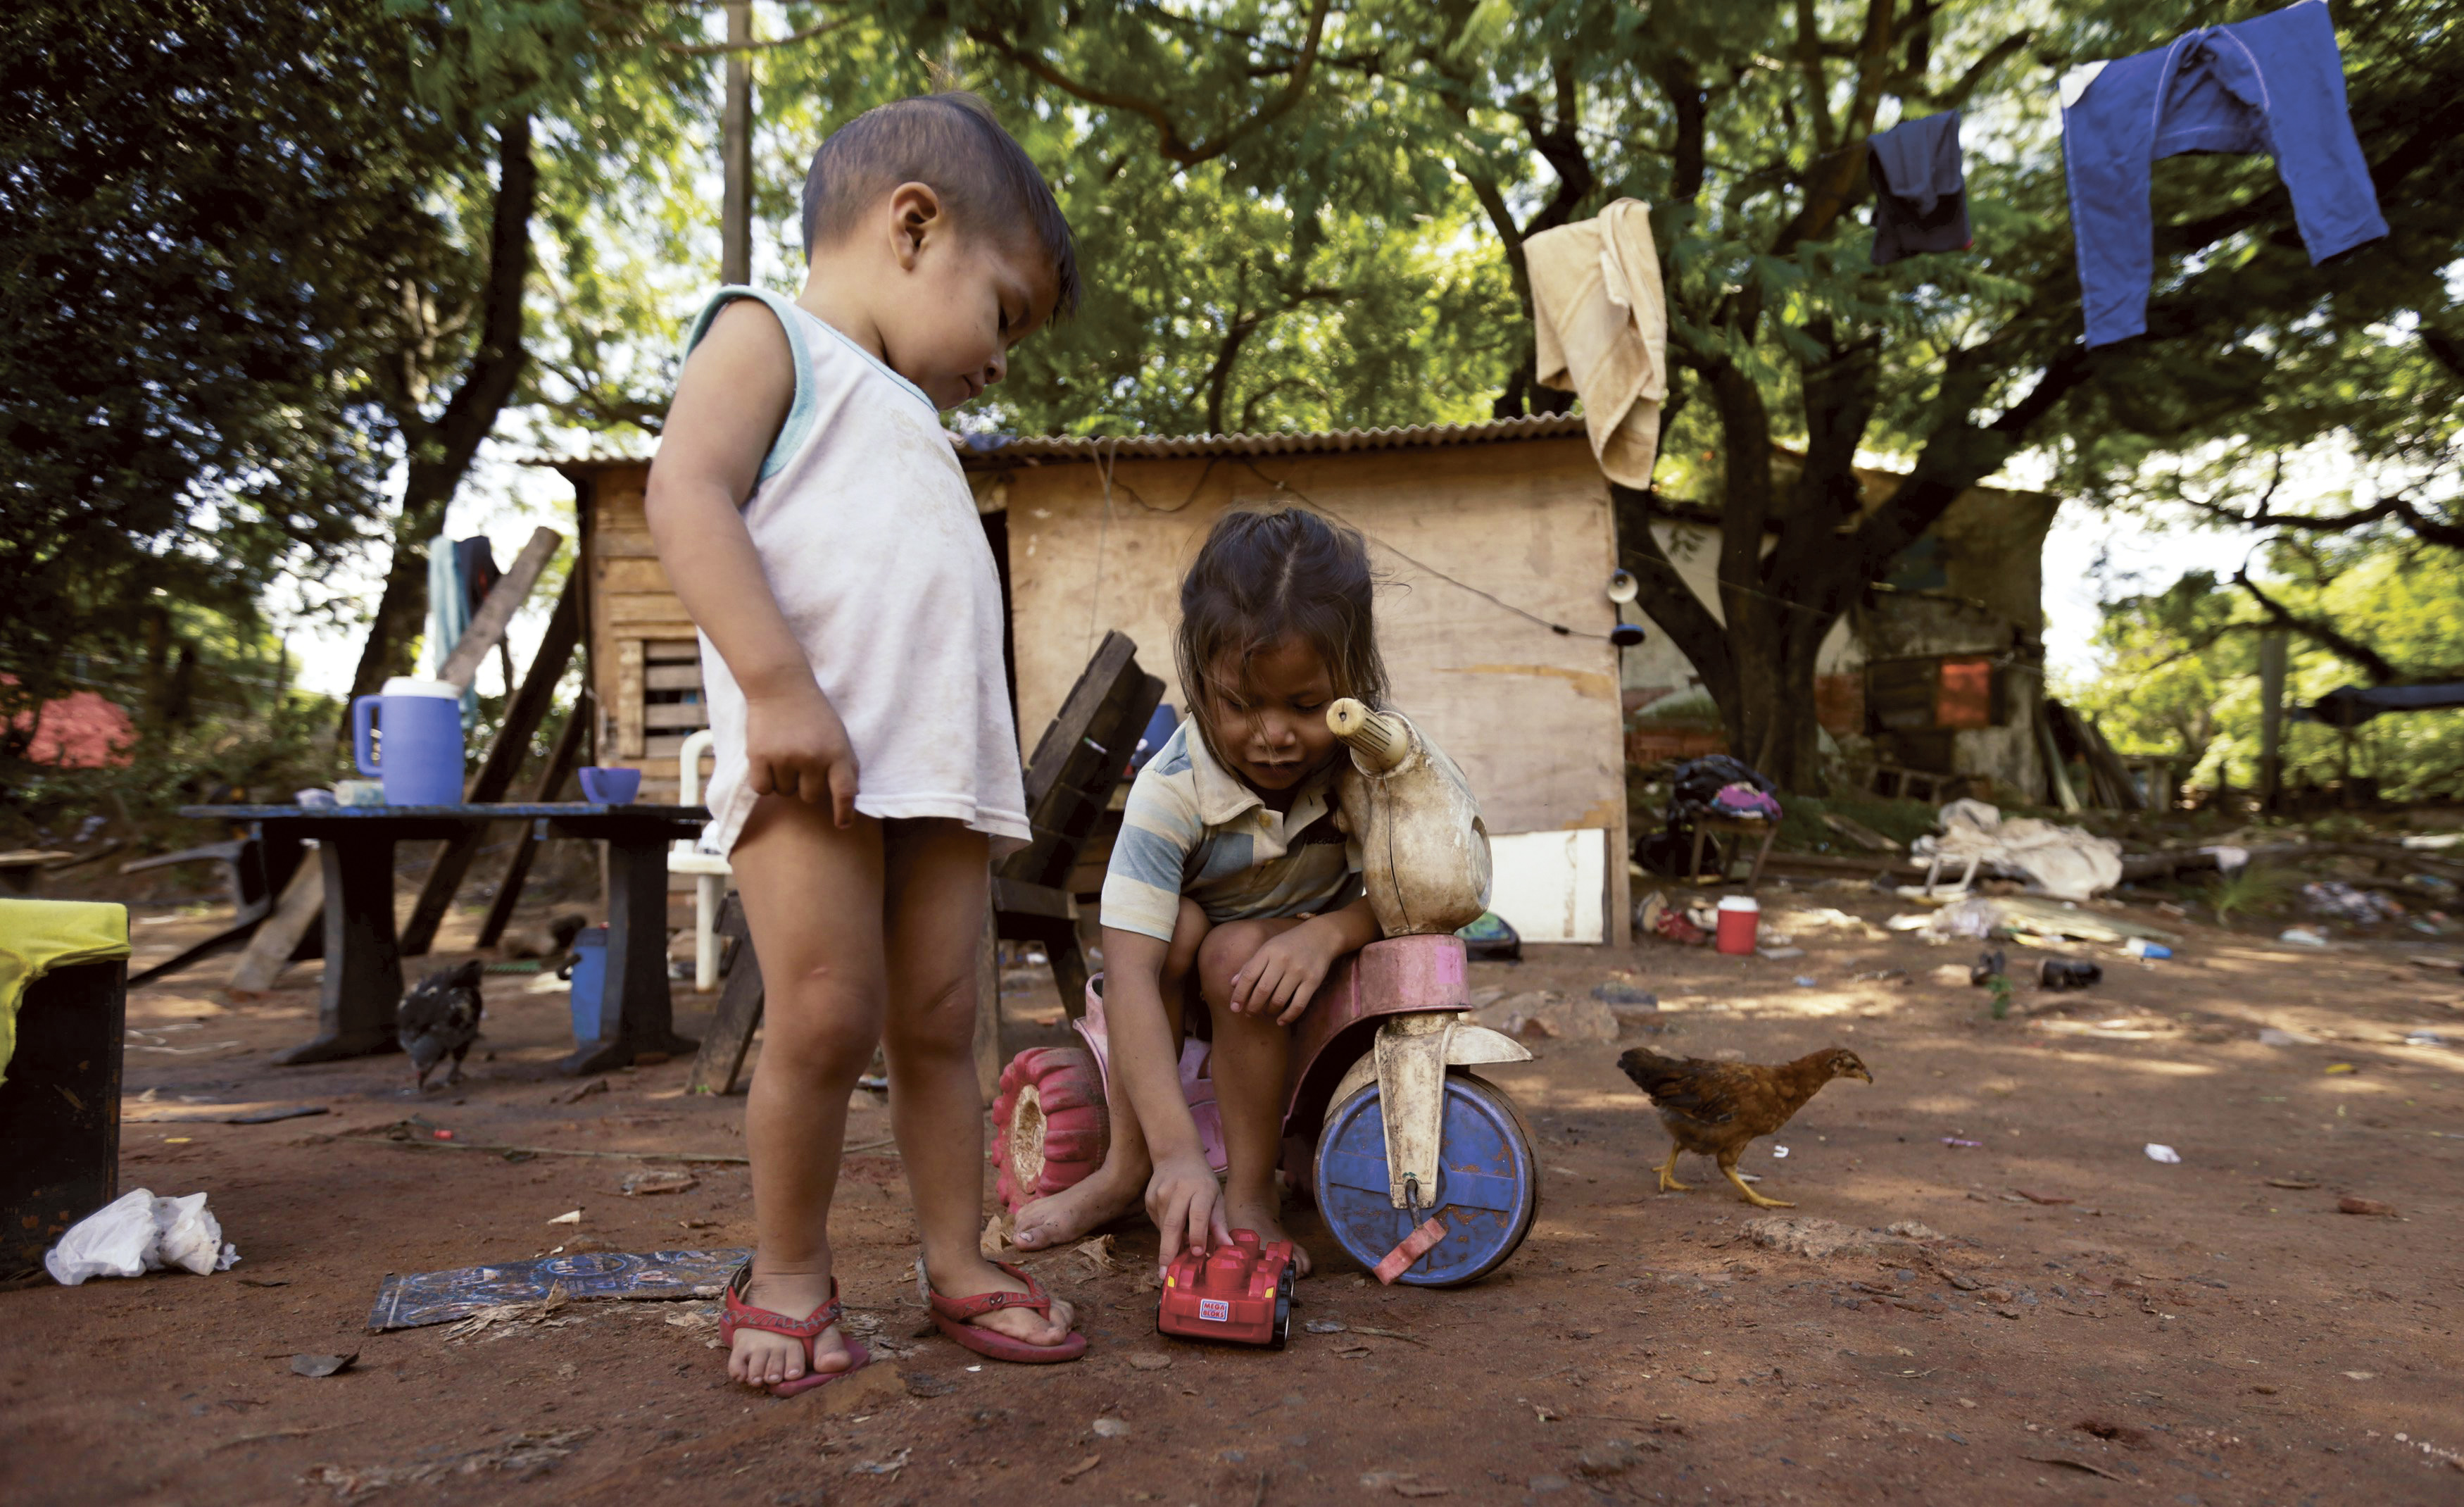 the effects of poverty on children The effects of poverty on children are wide-reaching and can lead to lifelong struggles, especially when young people don't receive full educations.